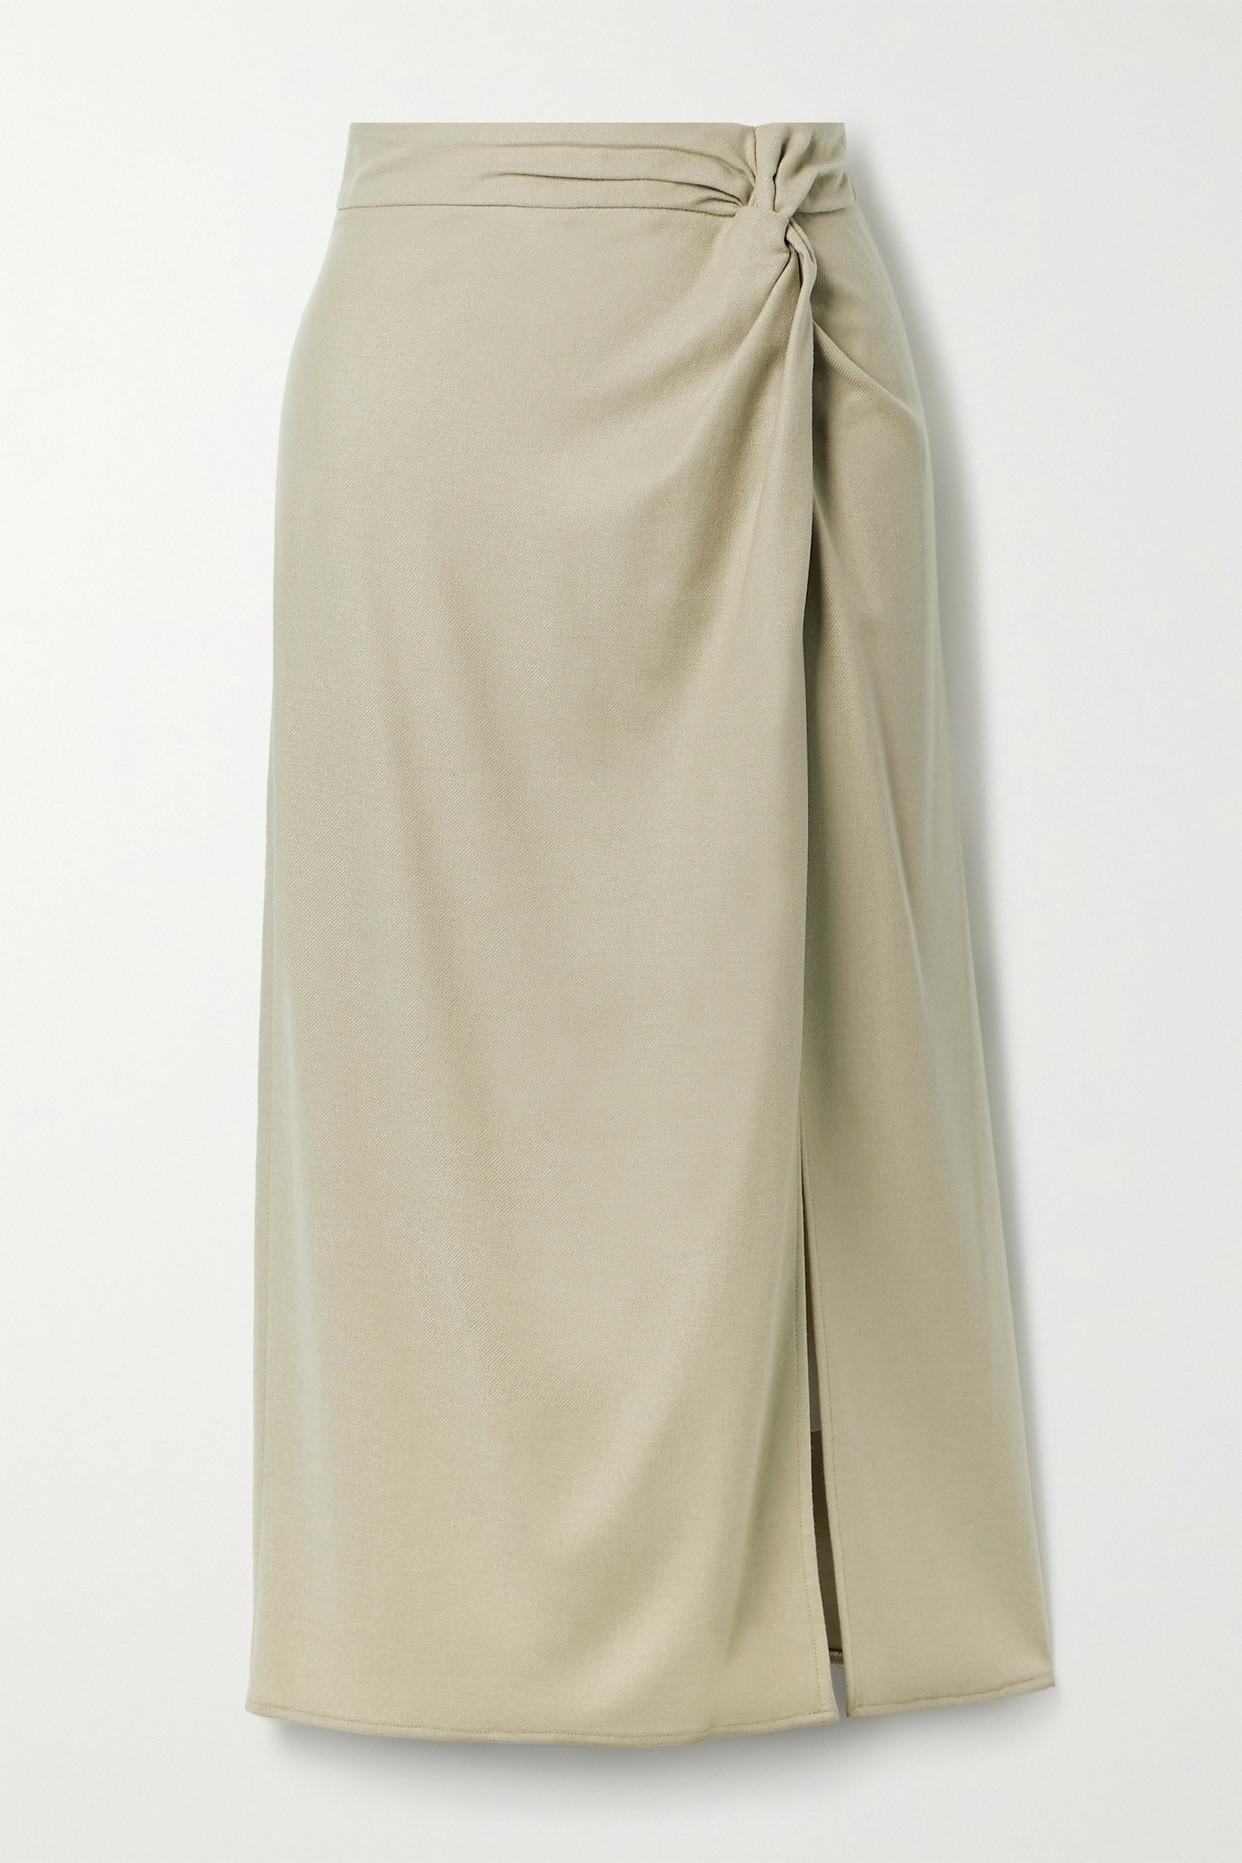 VINCE - Knotted Flannel Midi Skirt - Neutrals - US2